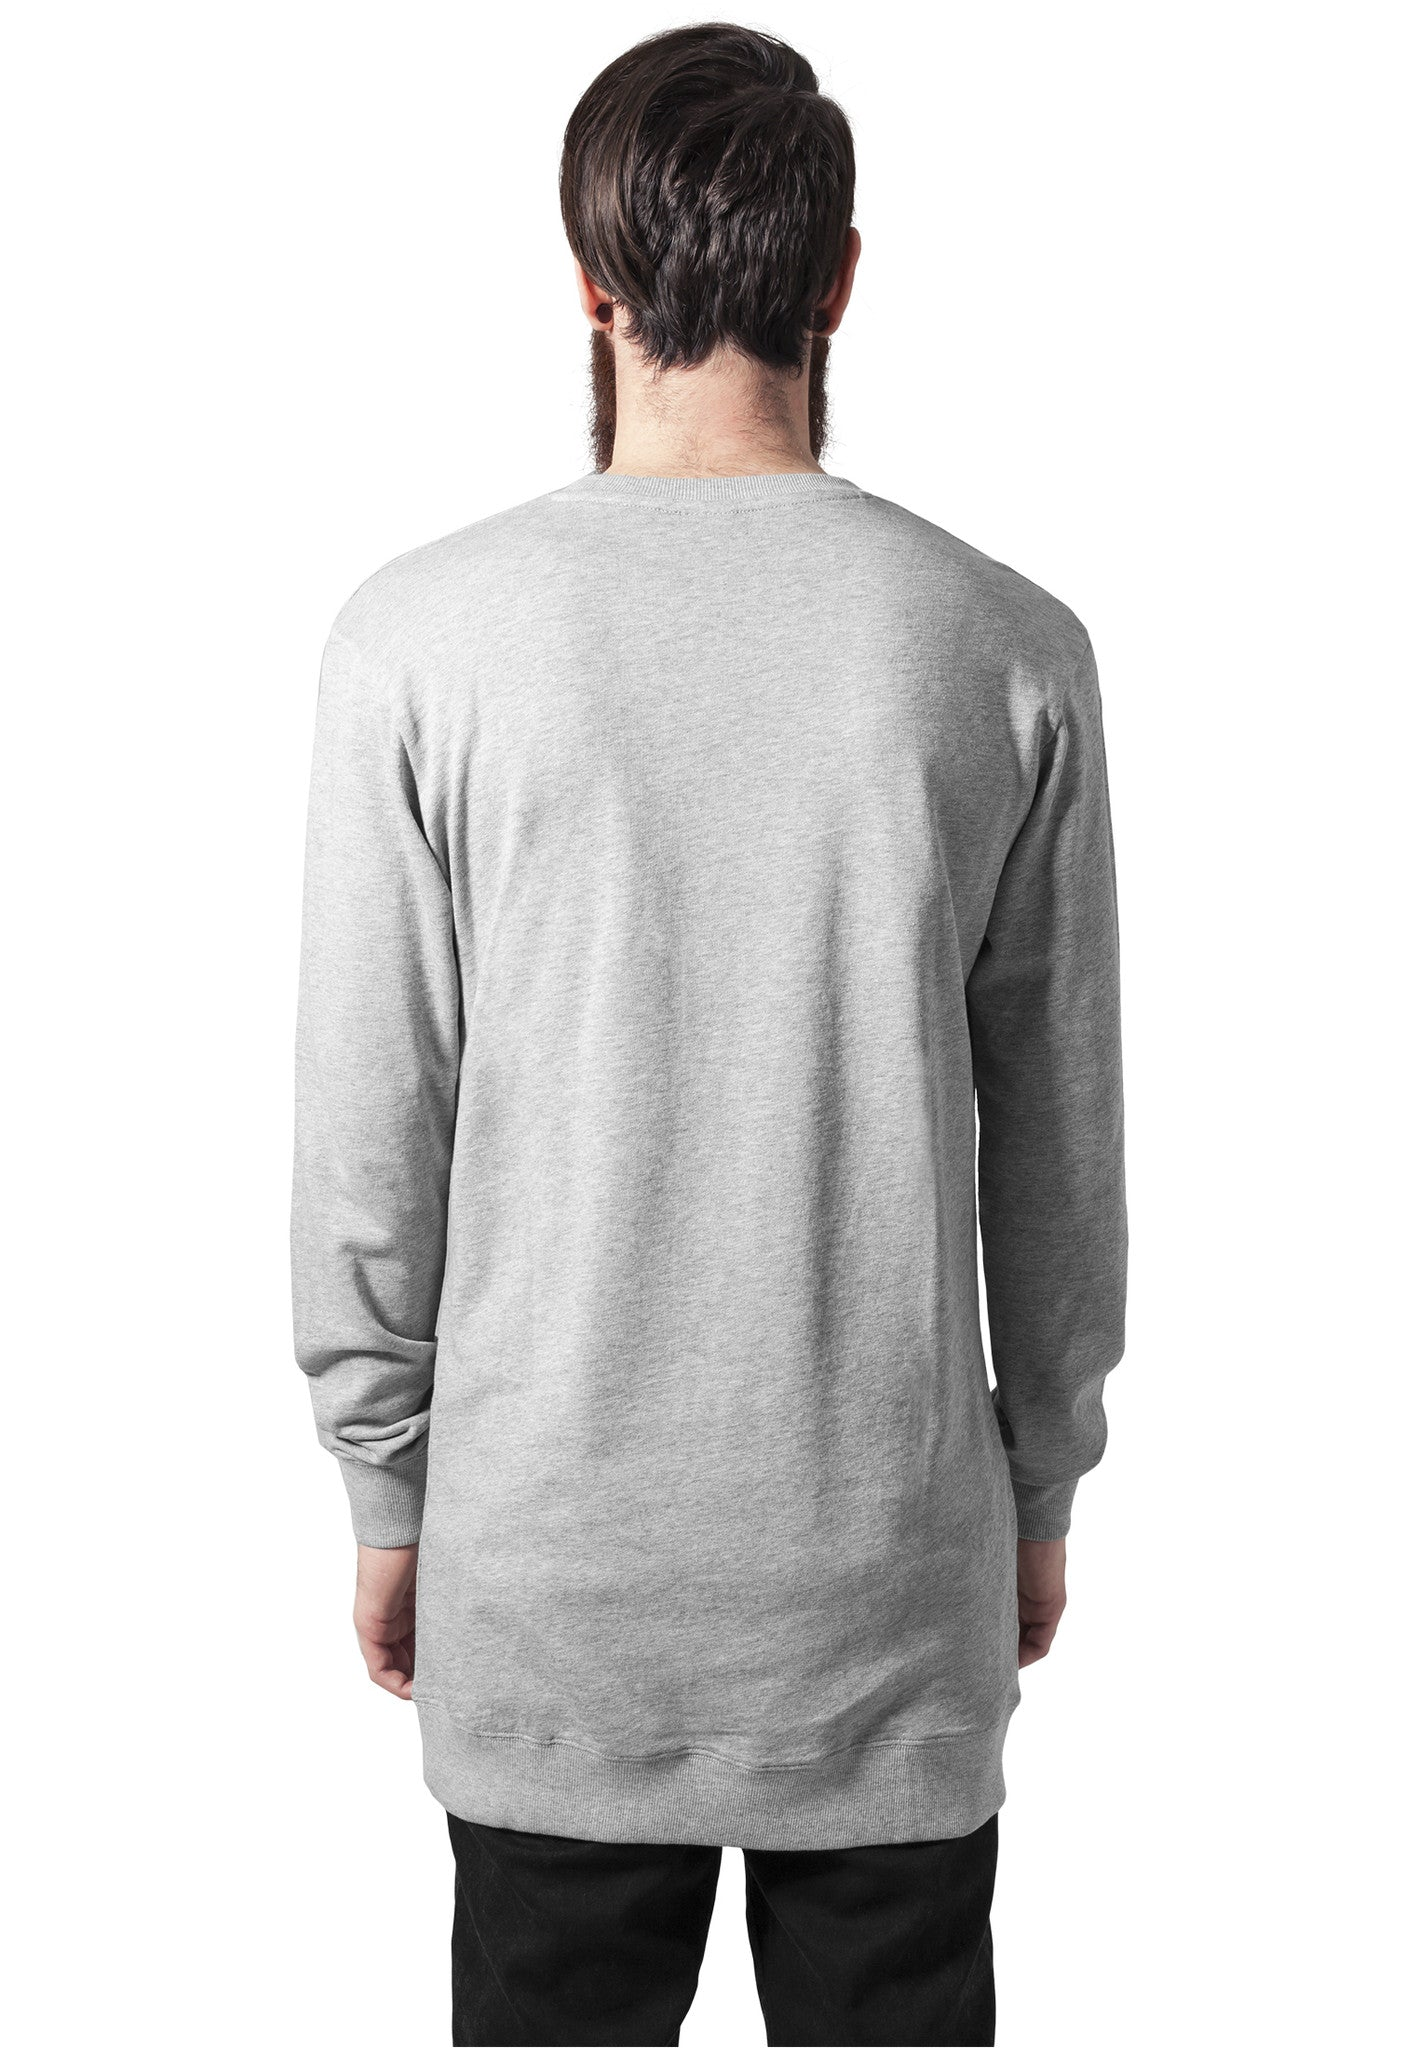 Long Light Fleece Crewneck TB1104 Grey